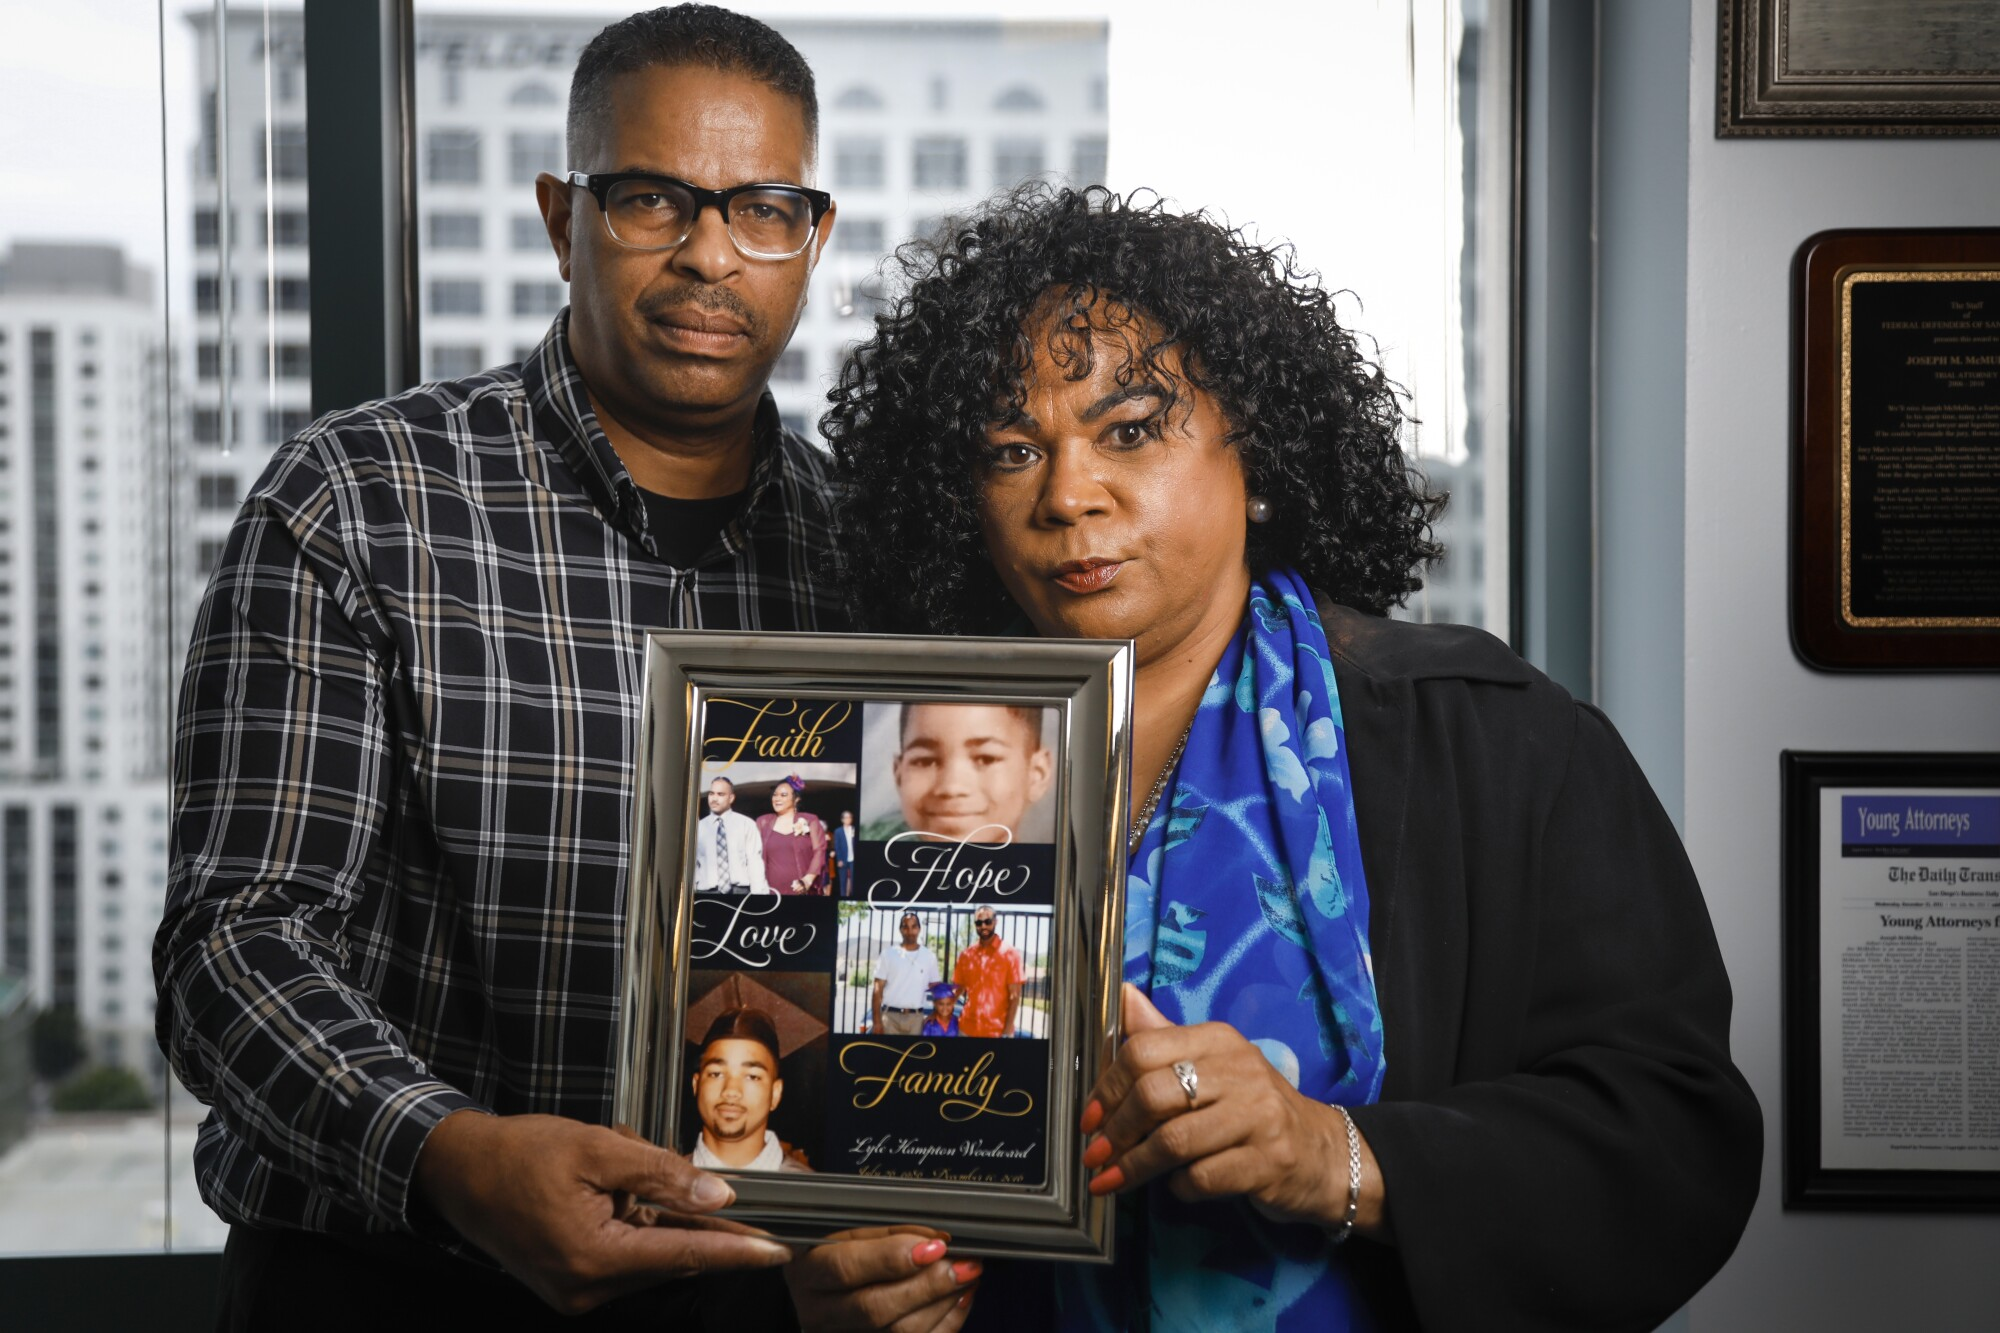 Edward Woodward, left, and his ex-wife, Bessie Woodward, right, hold a framed photo collage of their son, Lyle Woodward, June 26, 2019 in San Diego, California, who died while in San Diego County Jail.